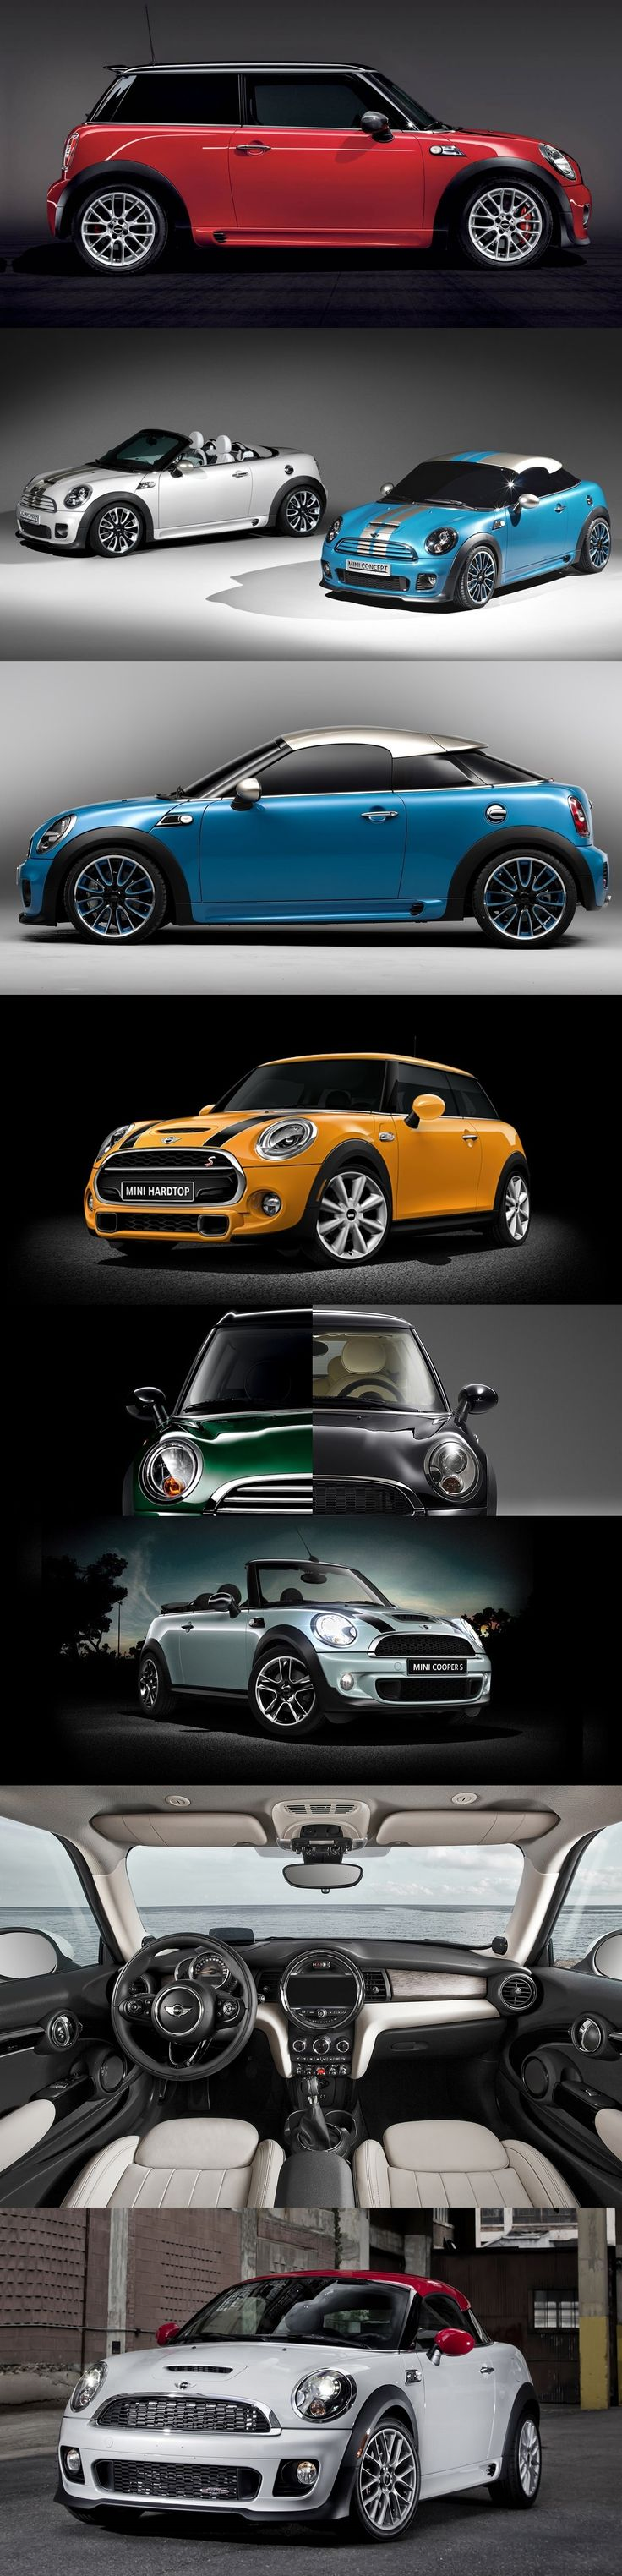 MINI Coopers For Sale - Welcome to RuelSpot.com, we have a large inventory of new and used MINI Coopers on sale; including the MINI Hardtop 2 Door, Hardtop 4 Door, Countryman, Paceman, Convertible, Coupe, John Cooper Works and  the nimble and swift Mini Cooper Roadster. http://www.ruelspot.com/mini-cooper/best-in-class-new-and-used-mini-cooper-for-sale/ #MINICooperForSale #MiniCooper #MINI